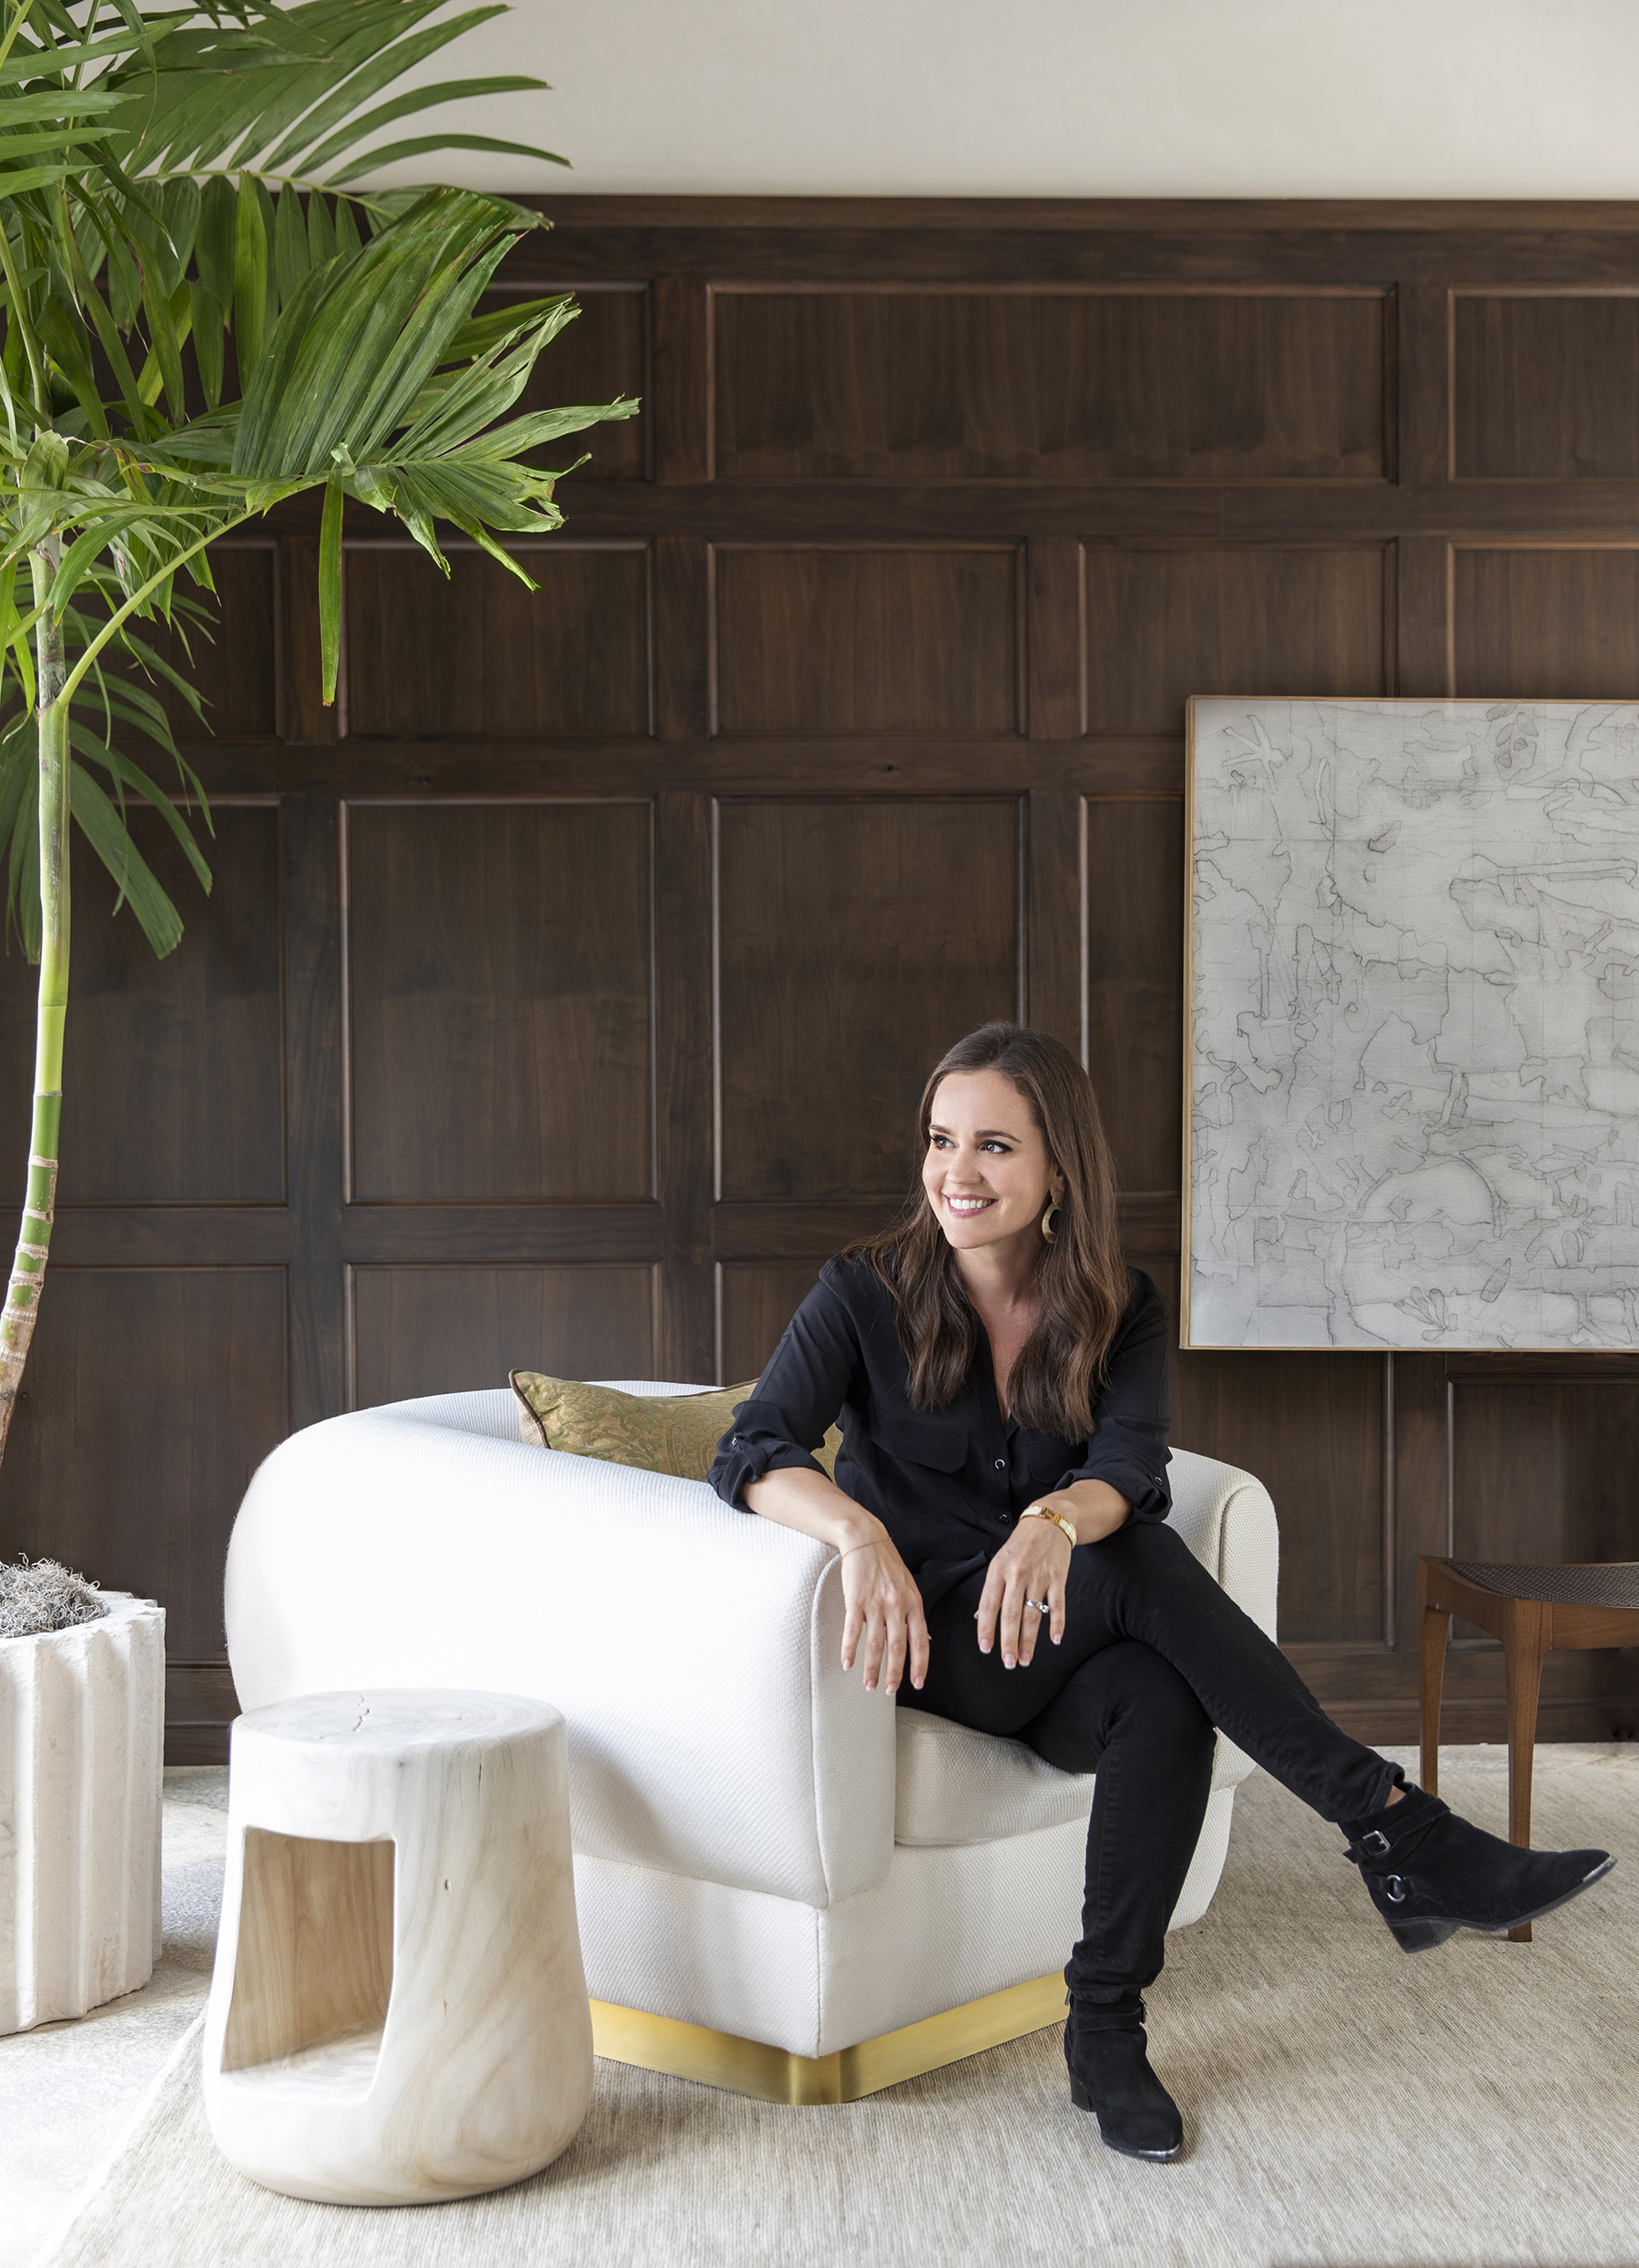 648: Marie Flanigan: Leveraging Relationships and Making Decisions in Interior Design show art